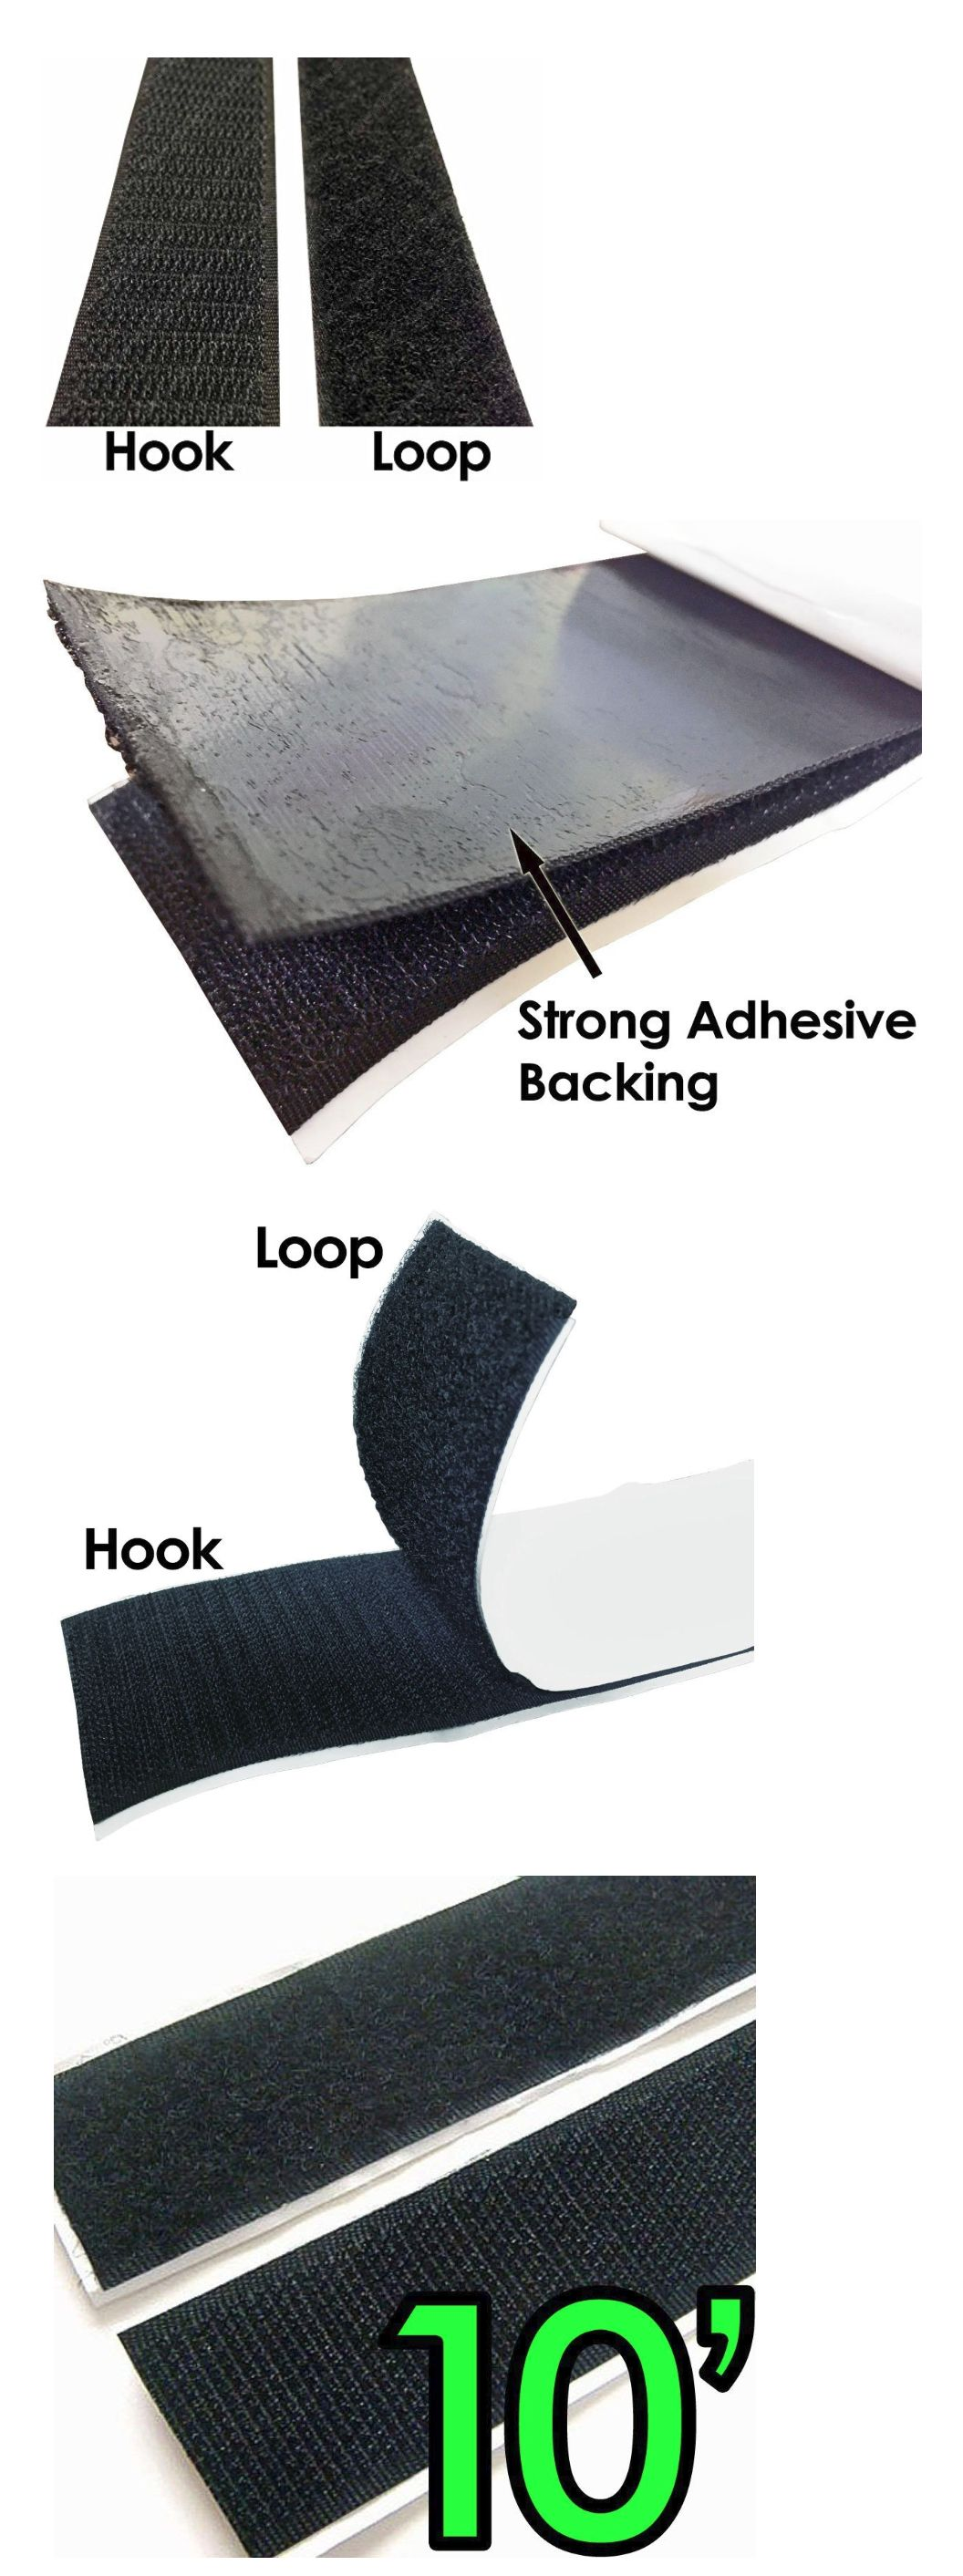 Hook And Loop Tape 180927 Sticky Back Tape Self Adhesive Hook Loop Waterproof Velcro Brand 2 10 Feet Buy It No Hook And Loop Tape Strong Adhesive Hook Loop